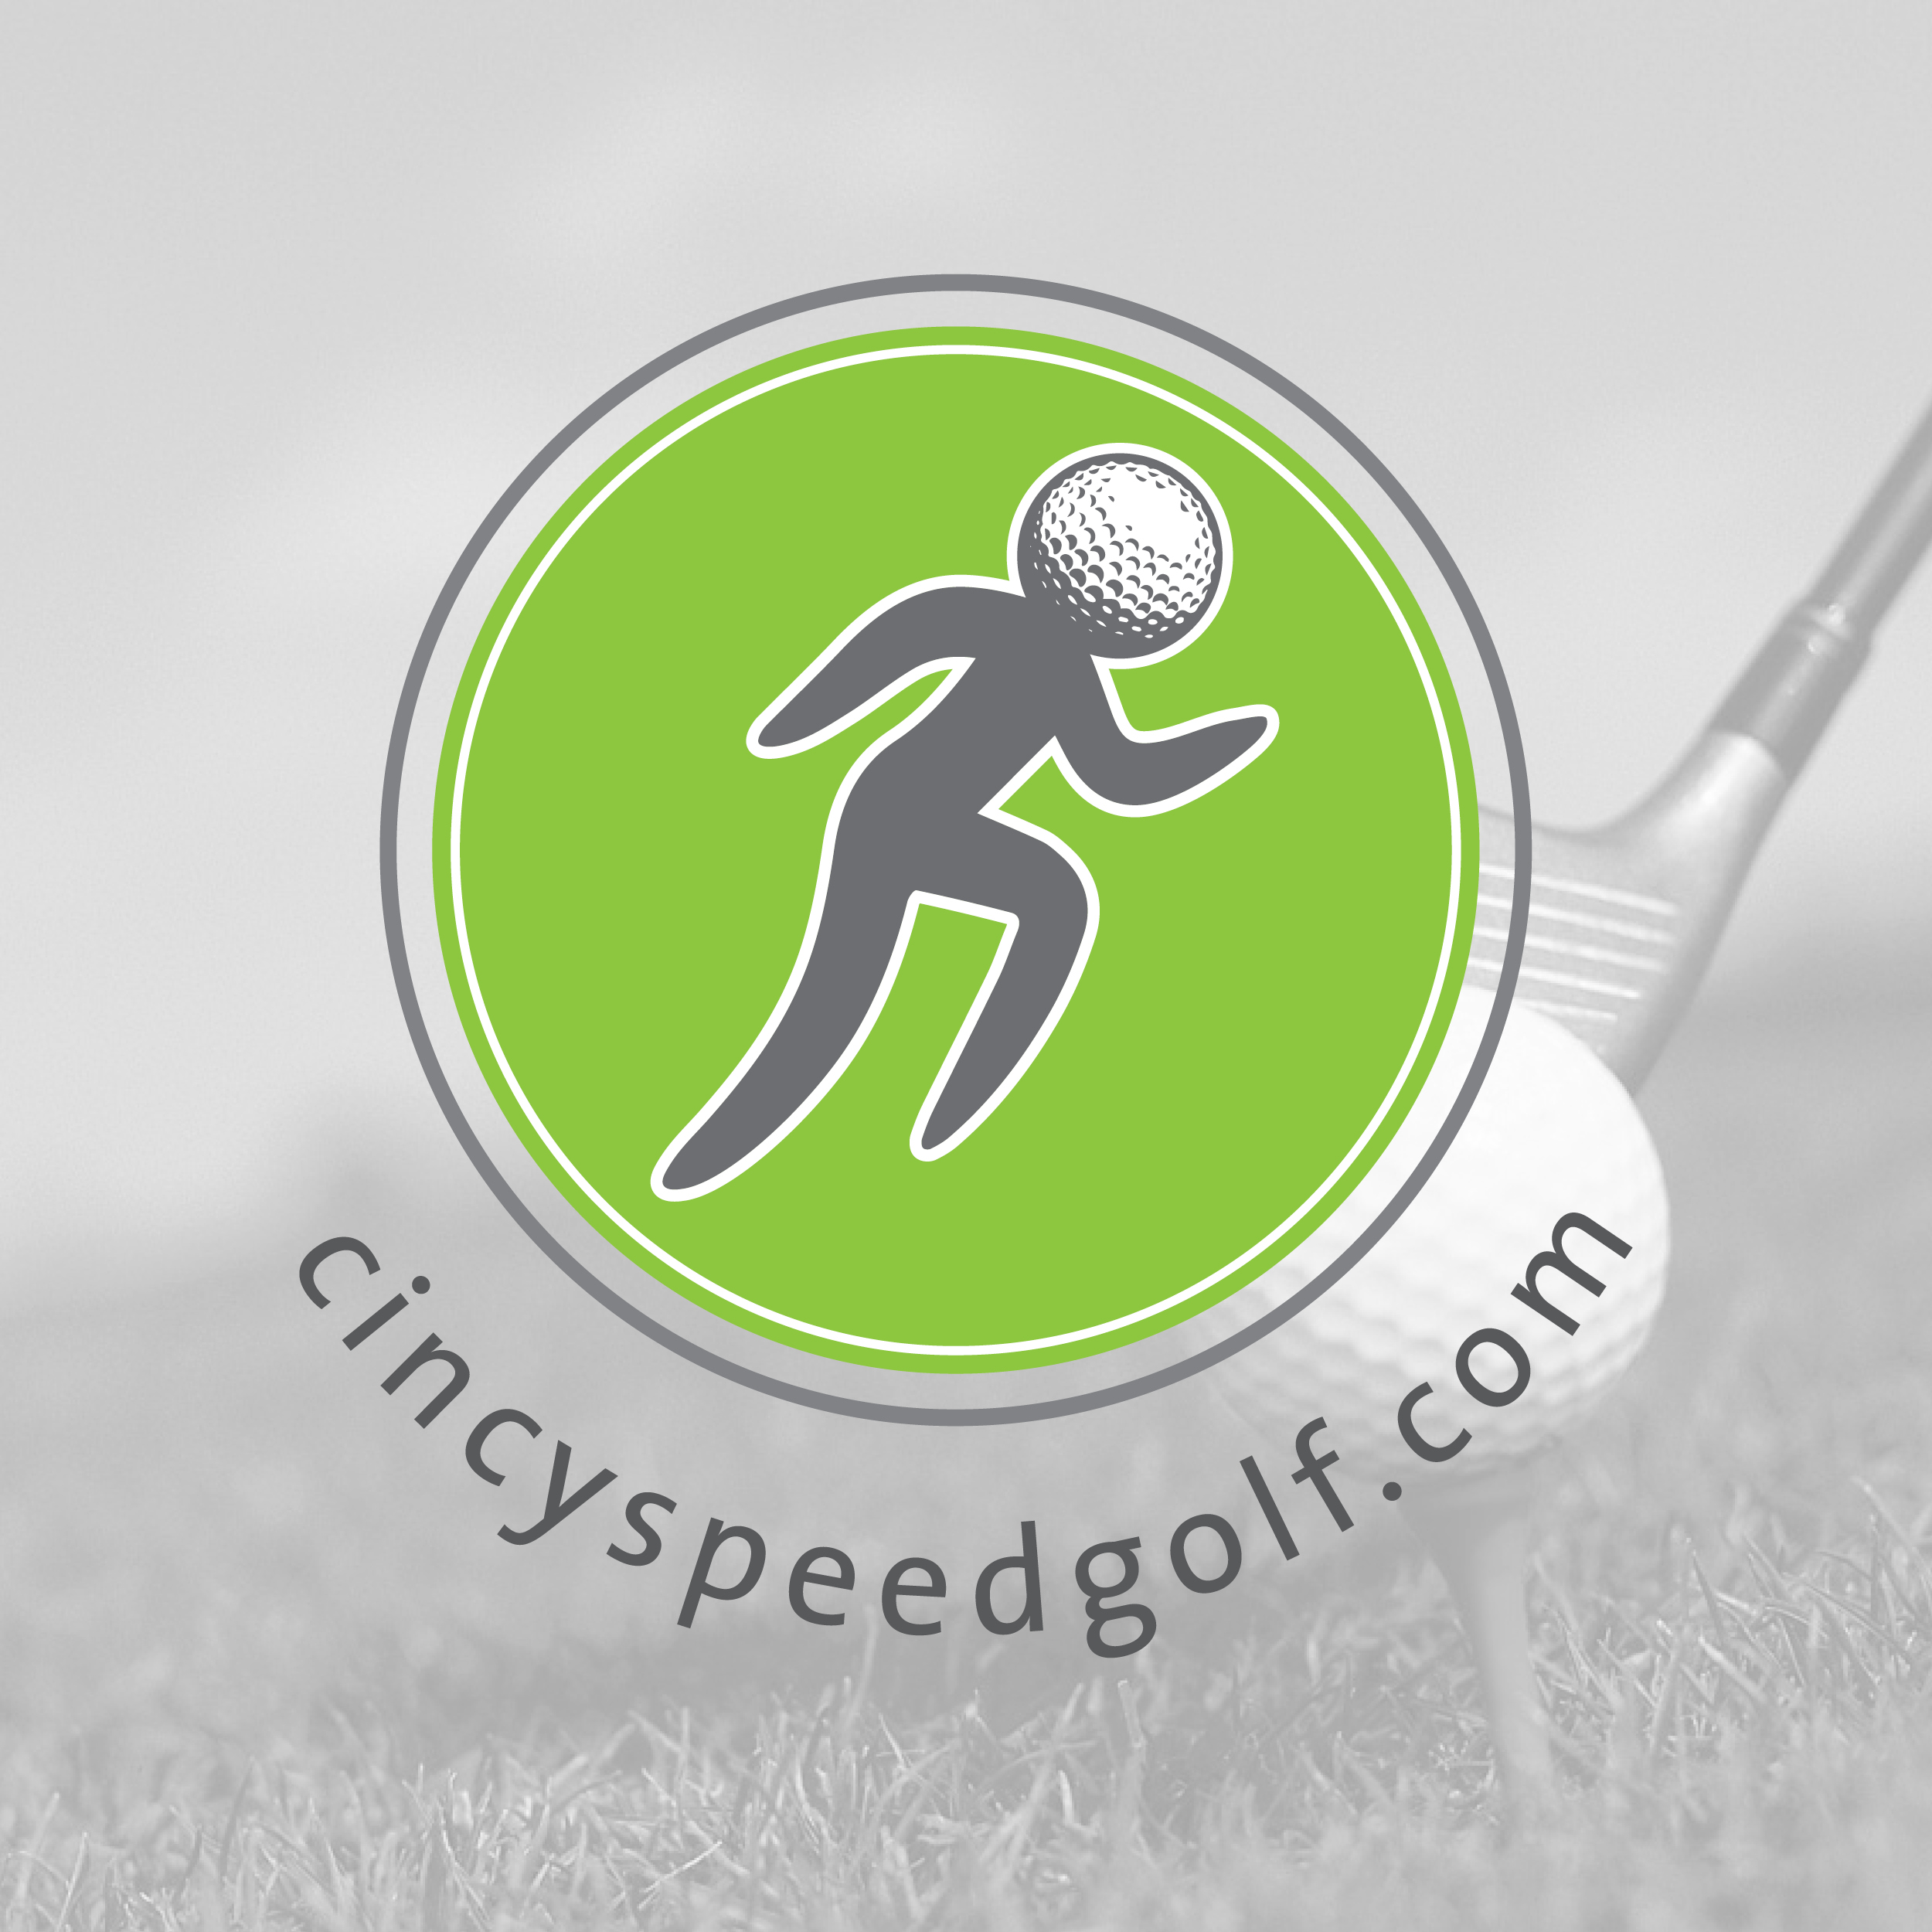 CINCY SPEED GOLF